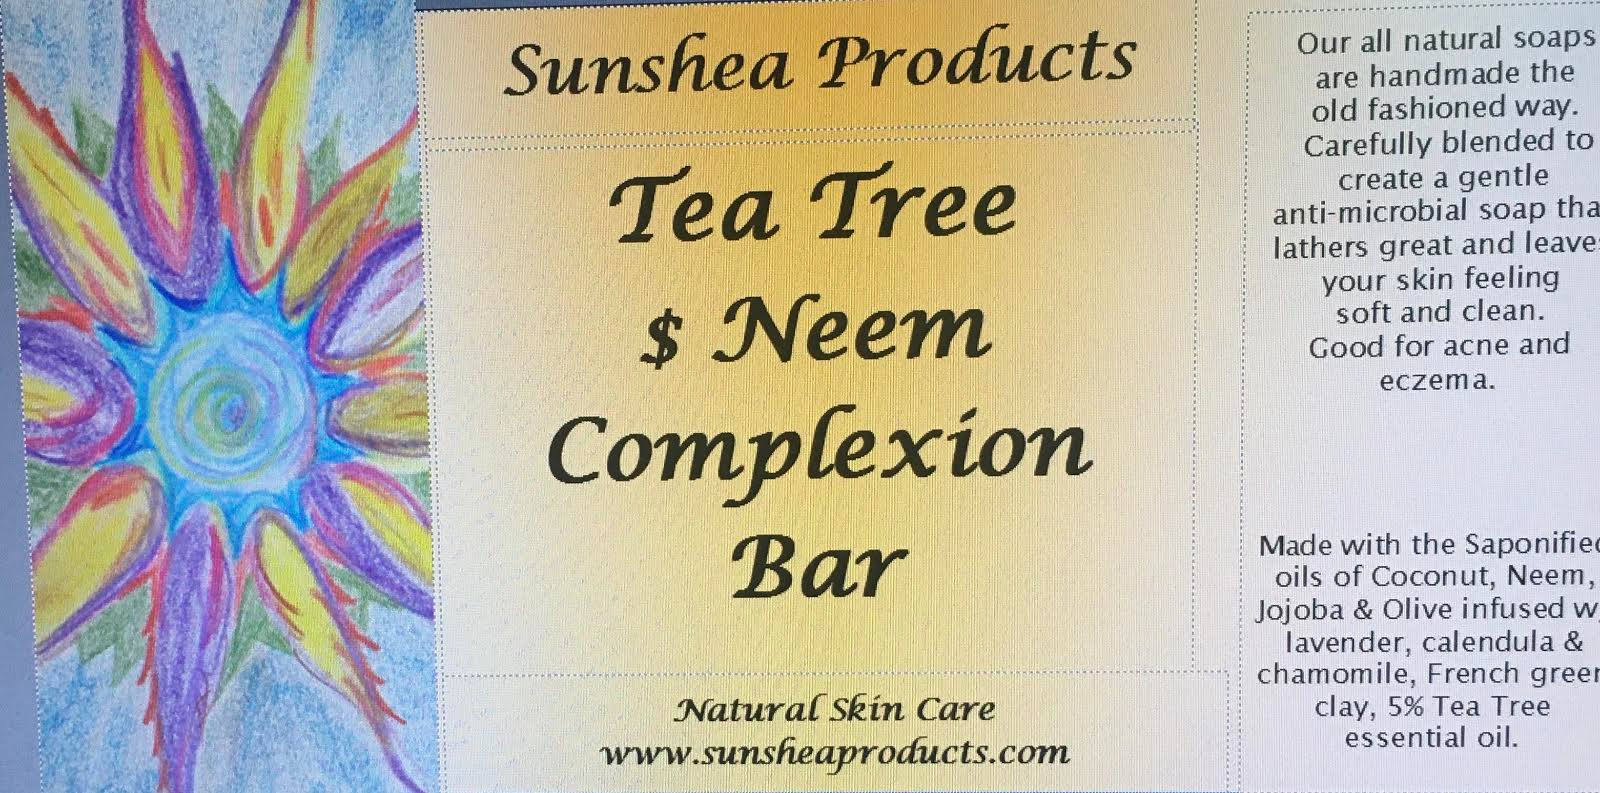 Tea Tree & Neem Complexion Bar